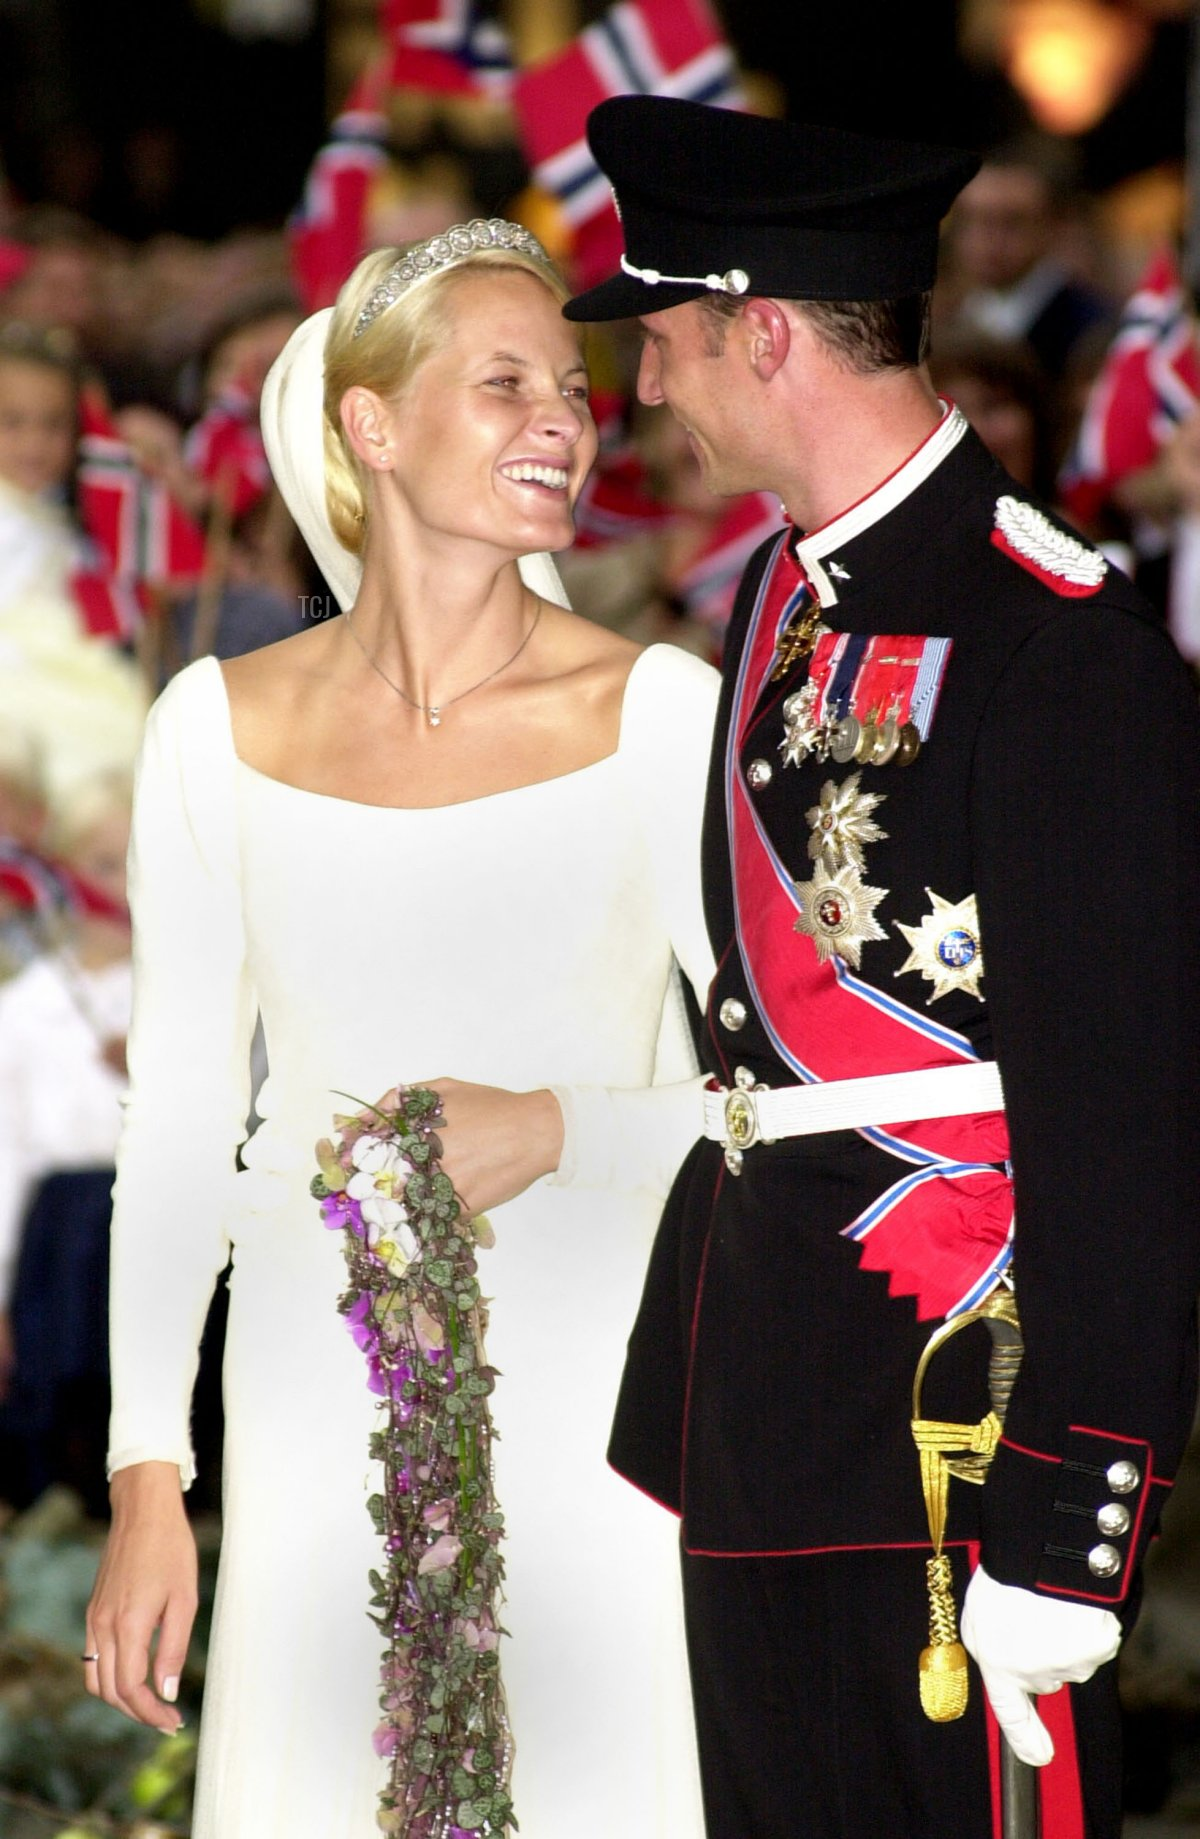 Norwegian Crown Prince Haakon and Mette-Marit Tjessem Hoiby leave the Oslo Cathedral August 25, 2001 after their wedding